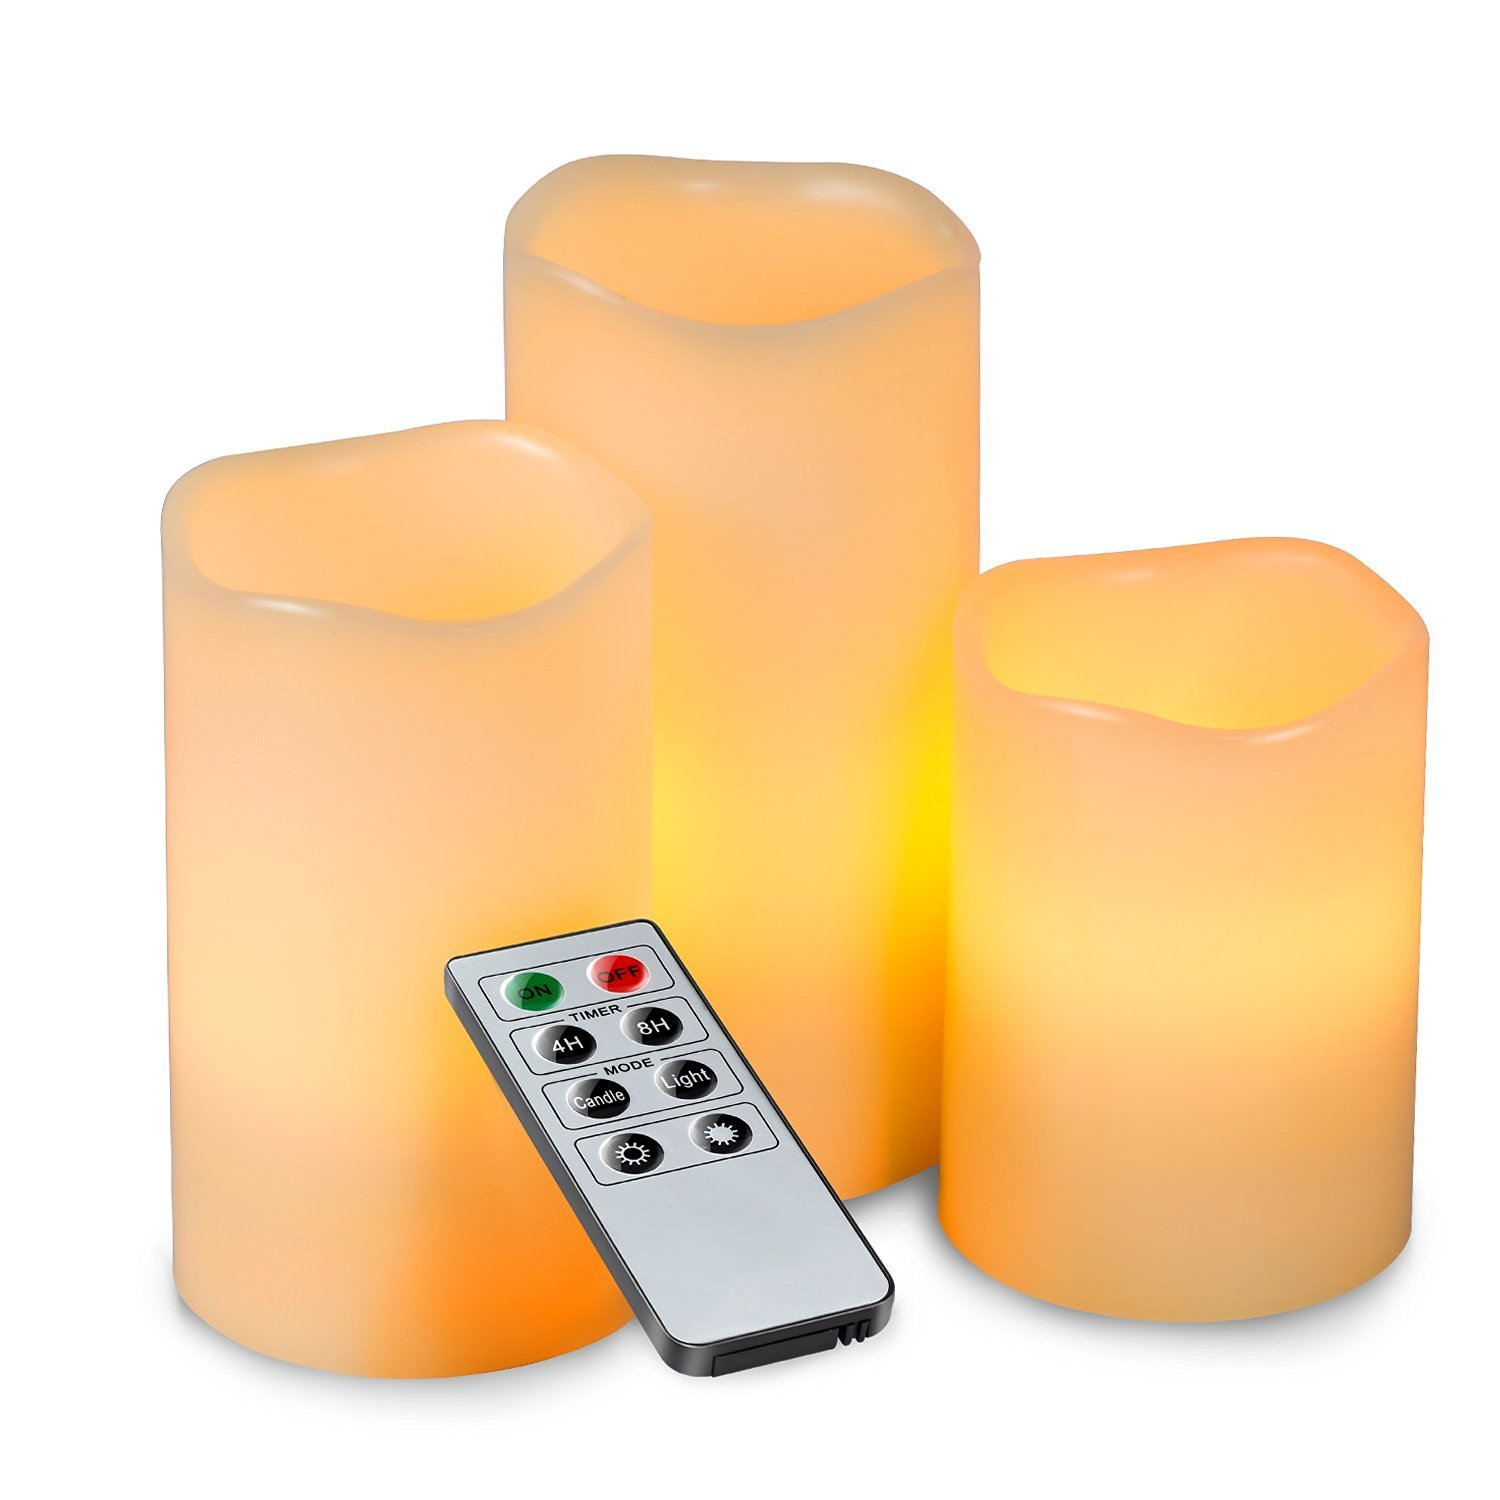 ALED LIGHT Electric Flameless Candles Set, Led Color Changing Battery Operated Candles Multi Function Remote Control with Timer, Romantic Safe Indoor Candle